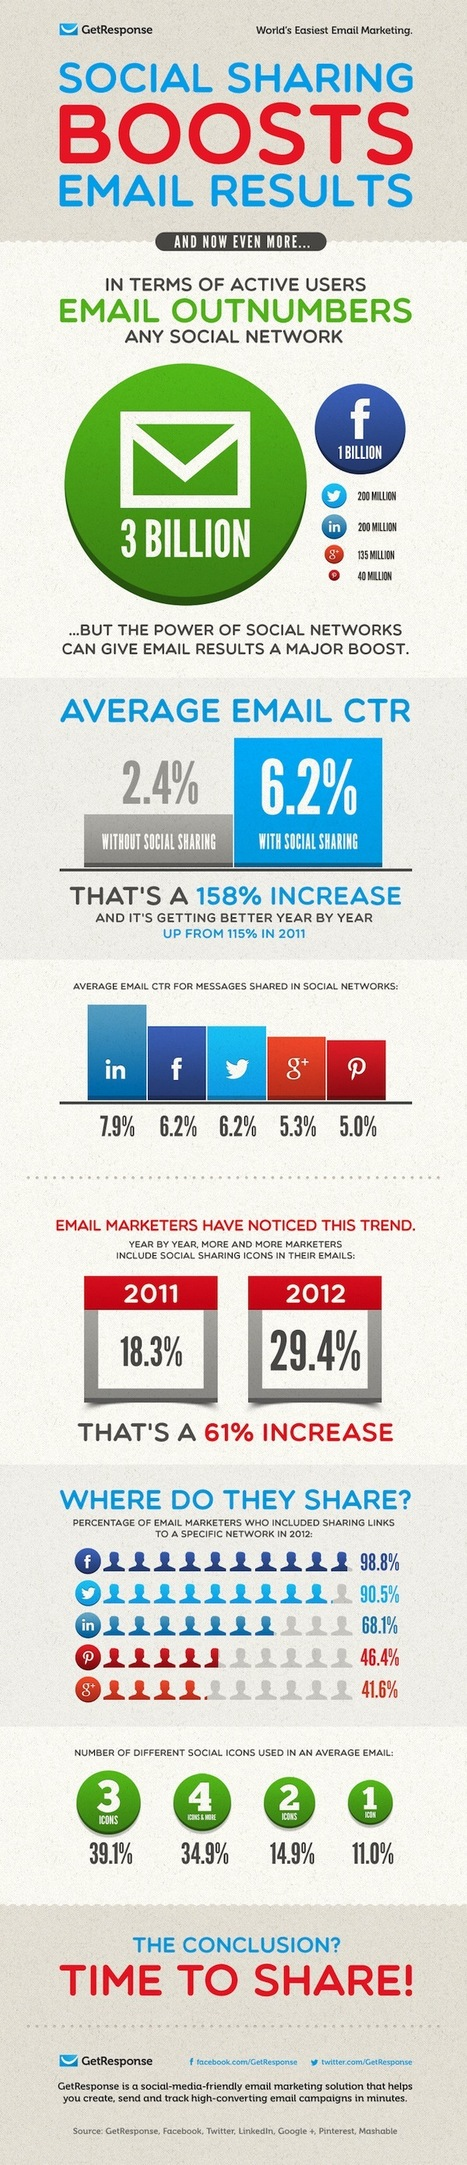 Social Sharing Boosts Email Results [Infographic] - Profs | Marketing | Scoop.it